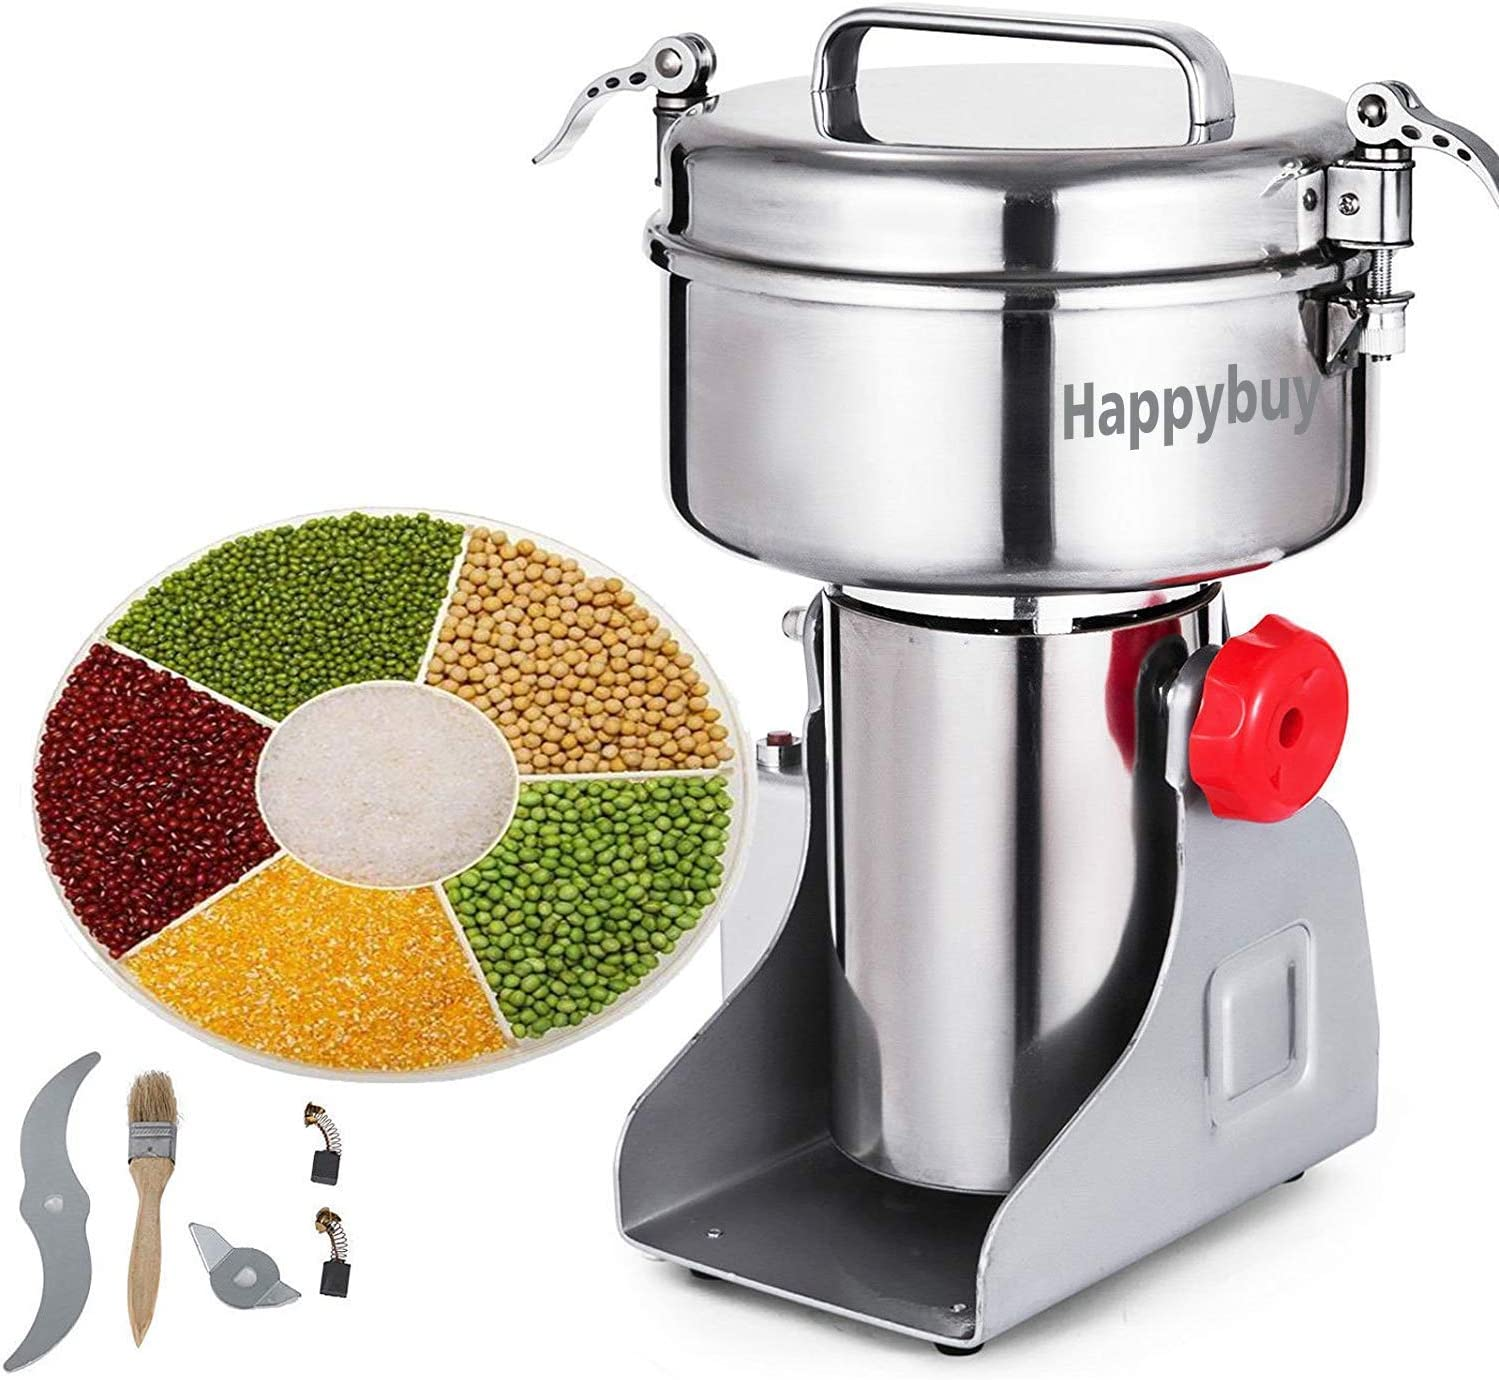 Happybuy Electric Grain Grinder 2000g Pulverizer Grinding Machine 4000W Mill Grinder Powder Machine 50-300 Mesh Stainless Steel Swing Type Grain Grinder Mill for Kitchen Herb Spice Pepper Coffee